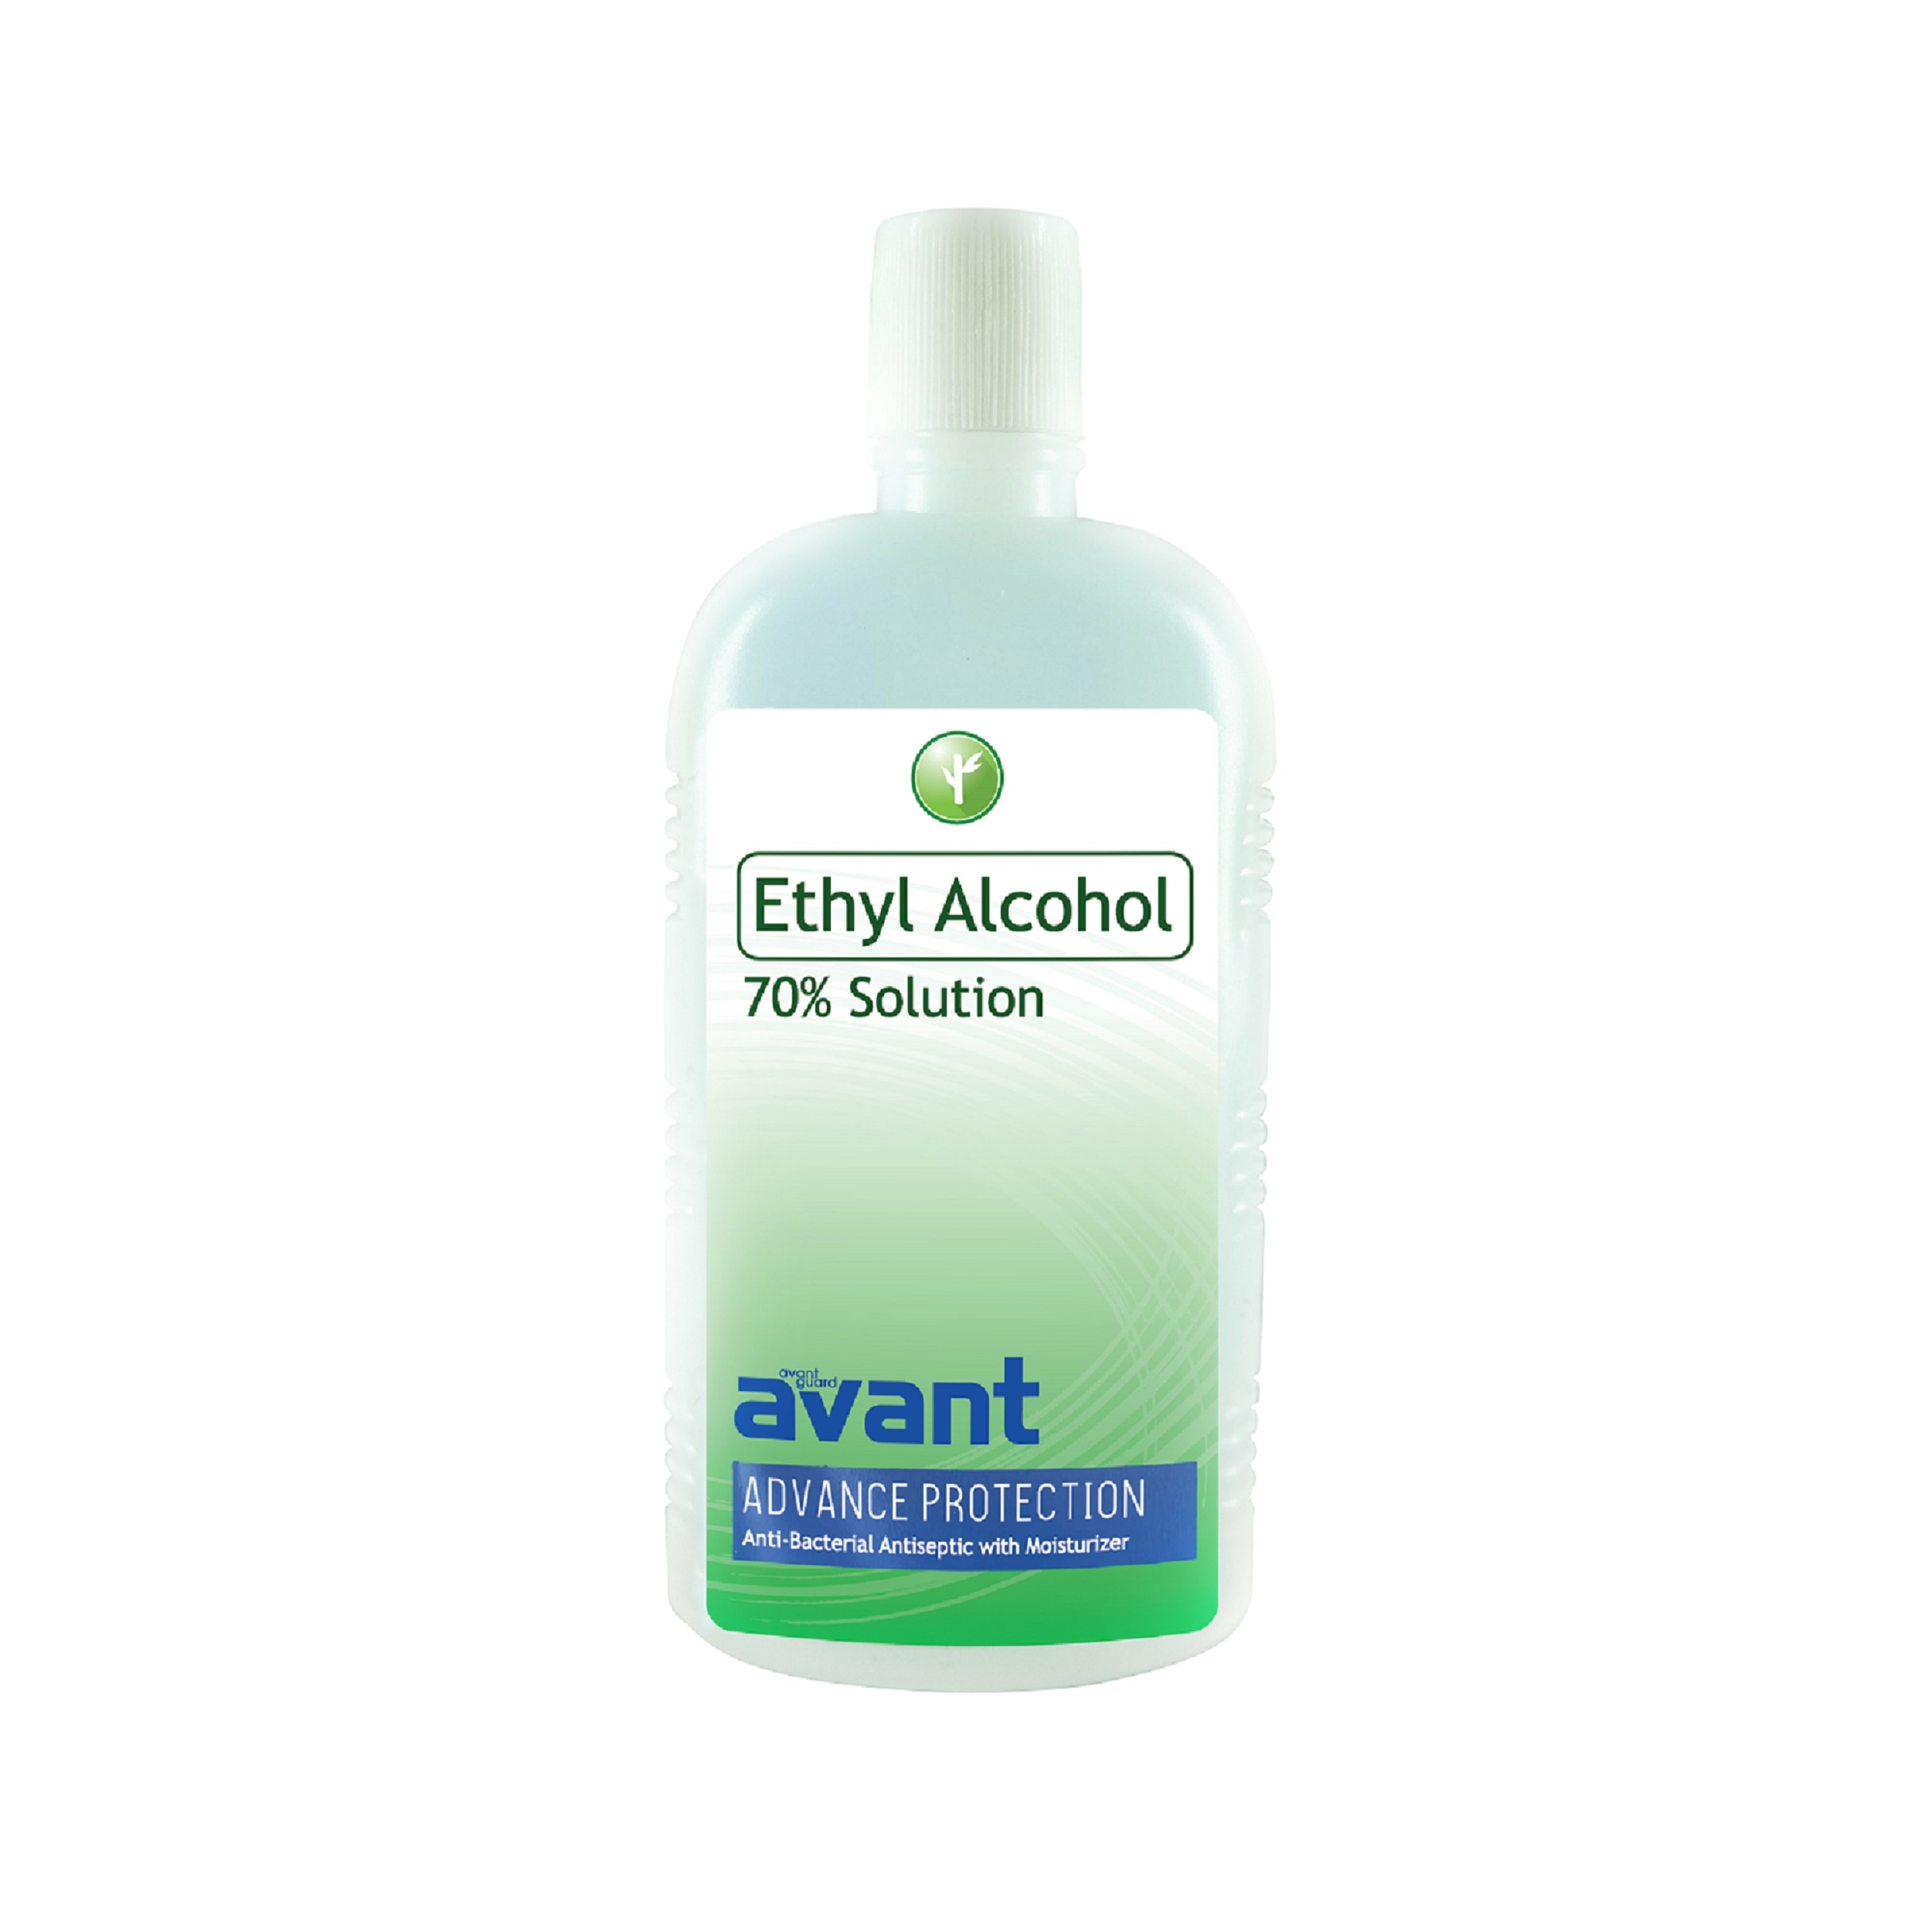 AVANTEthyl Alcohol 70% Solution 250ml,Alcohol and Disinfectant